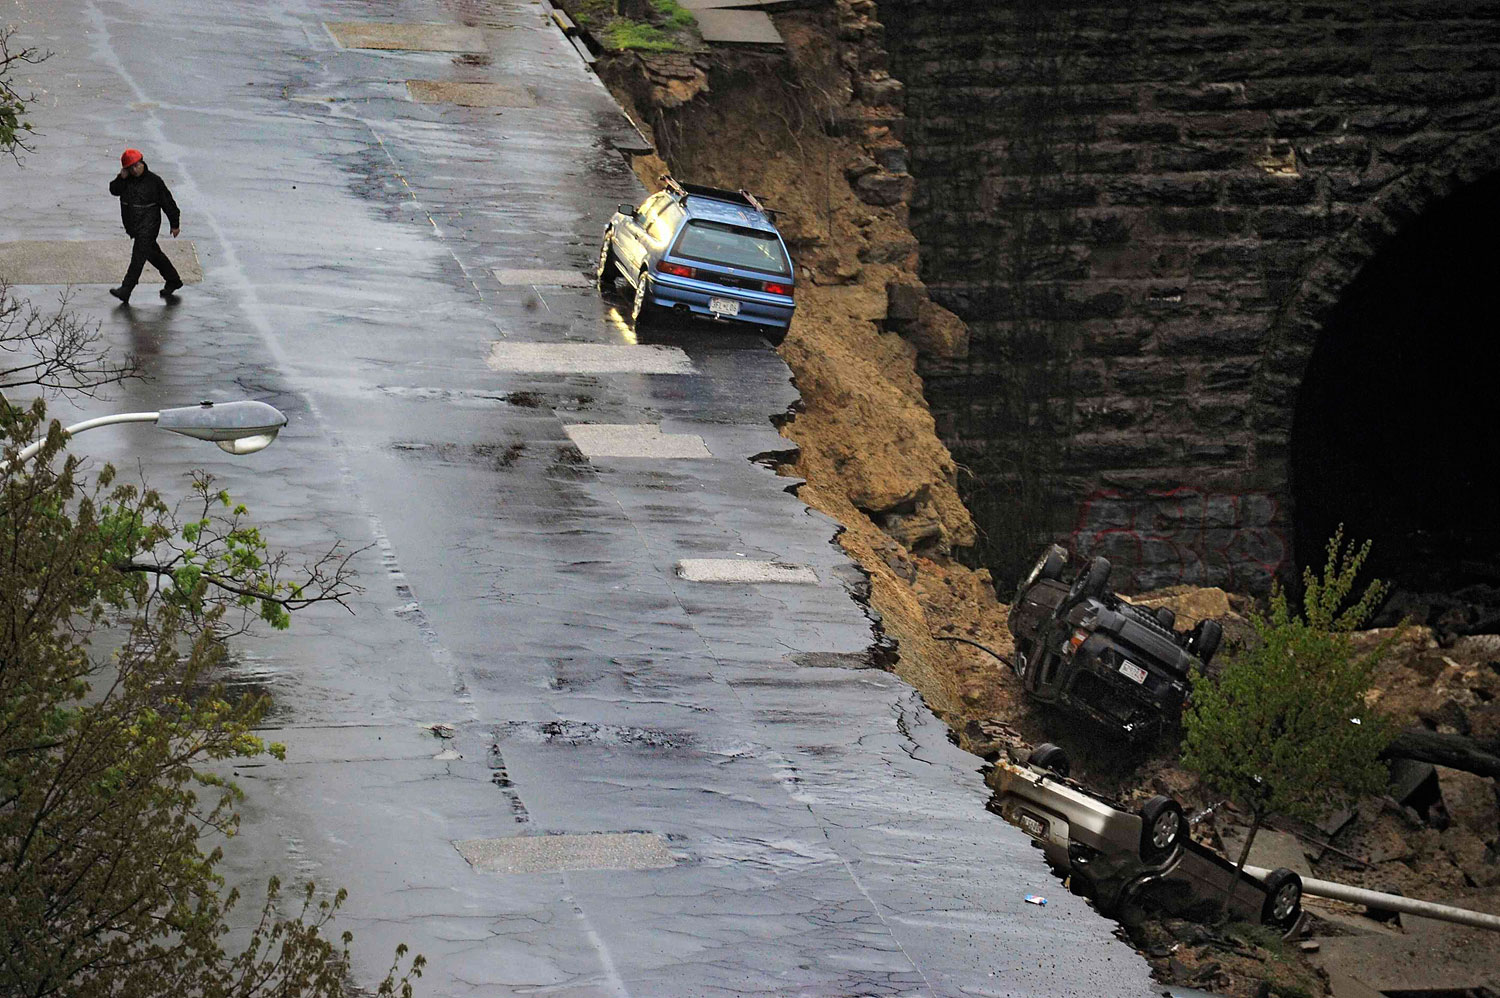 An emergency worker walks on the other side of the street where one car still rests precariously after a retaining wall collapsed beneath a row of vehicles in Baltimore, Maryland, April 30, 2014.